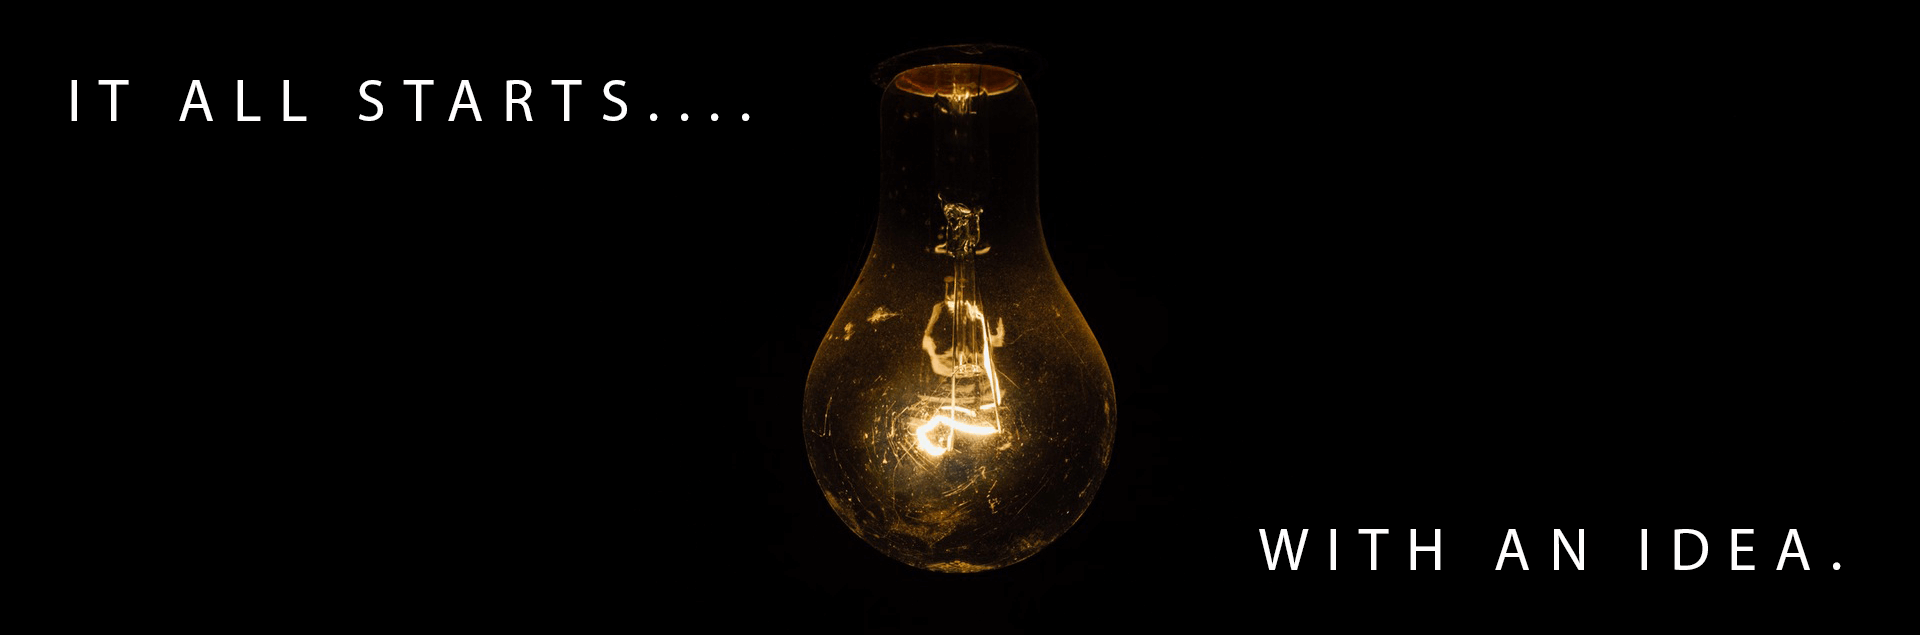 It all starts with an idea - A light bulb moment.